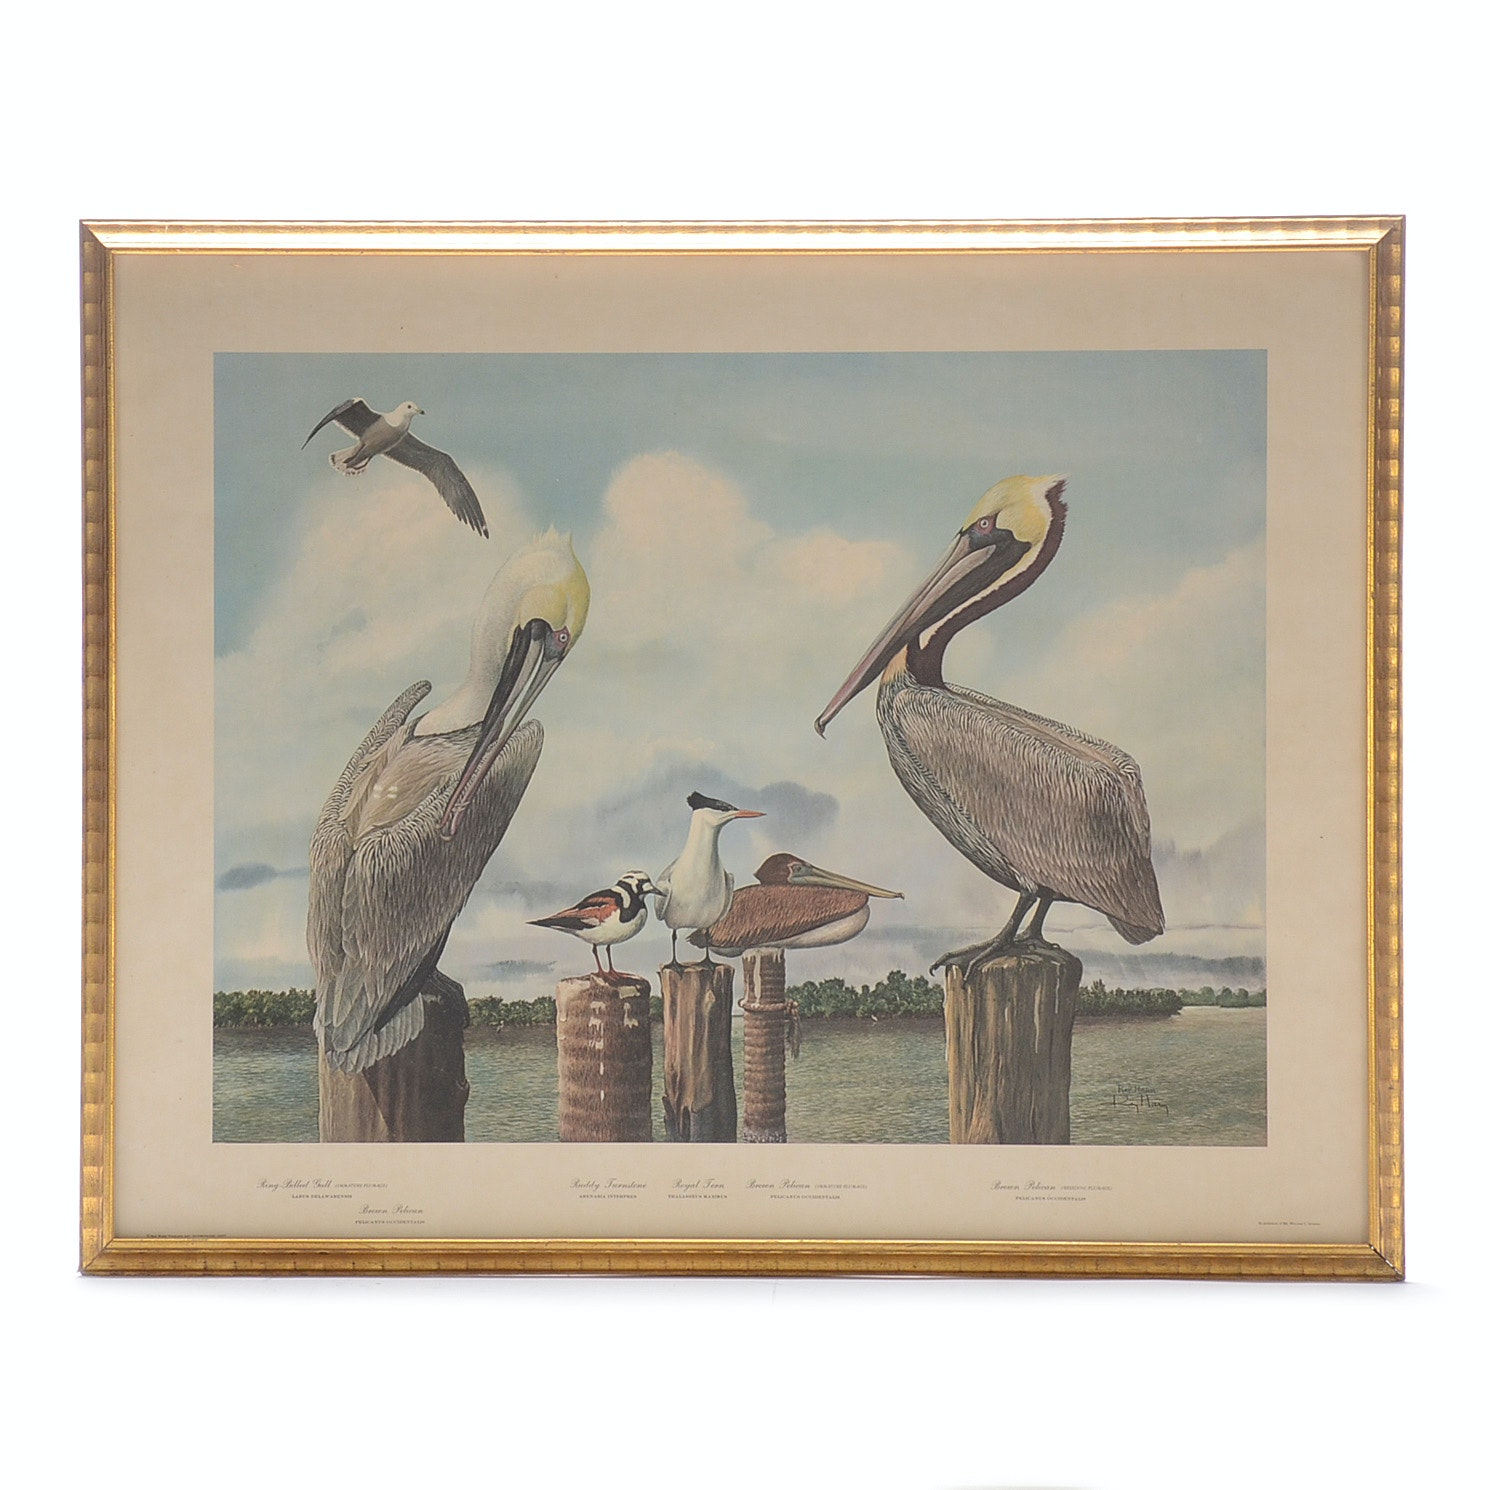 Ray Harm Signed 1967 Offset Lithograph Print on Paper of Waterbirds